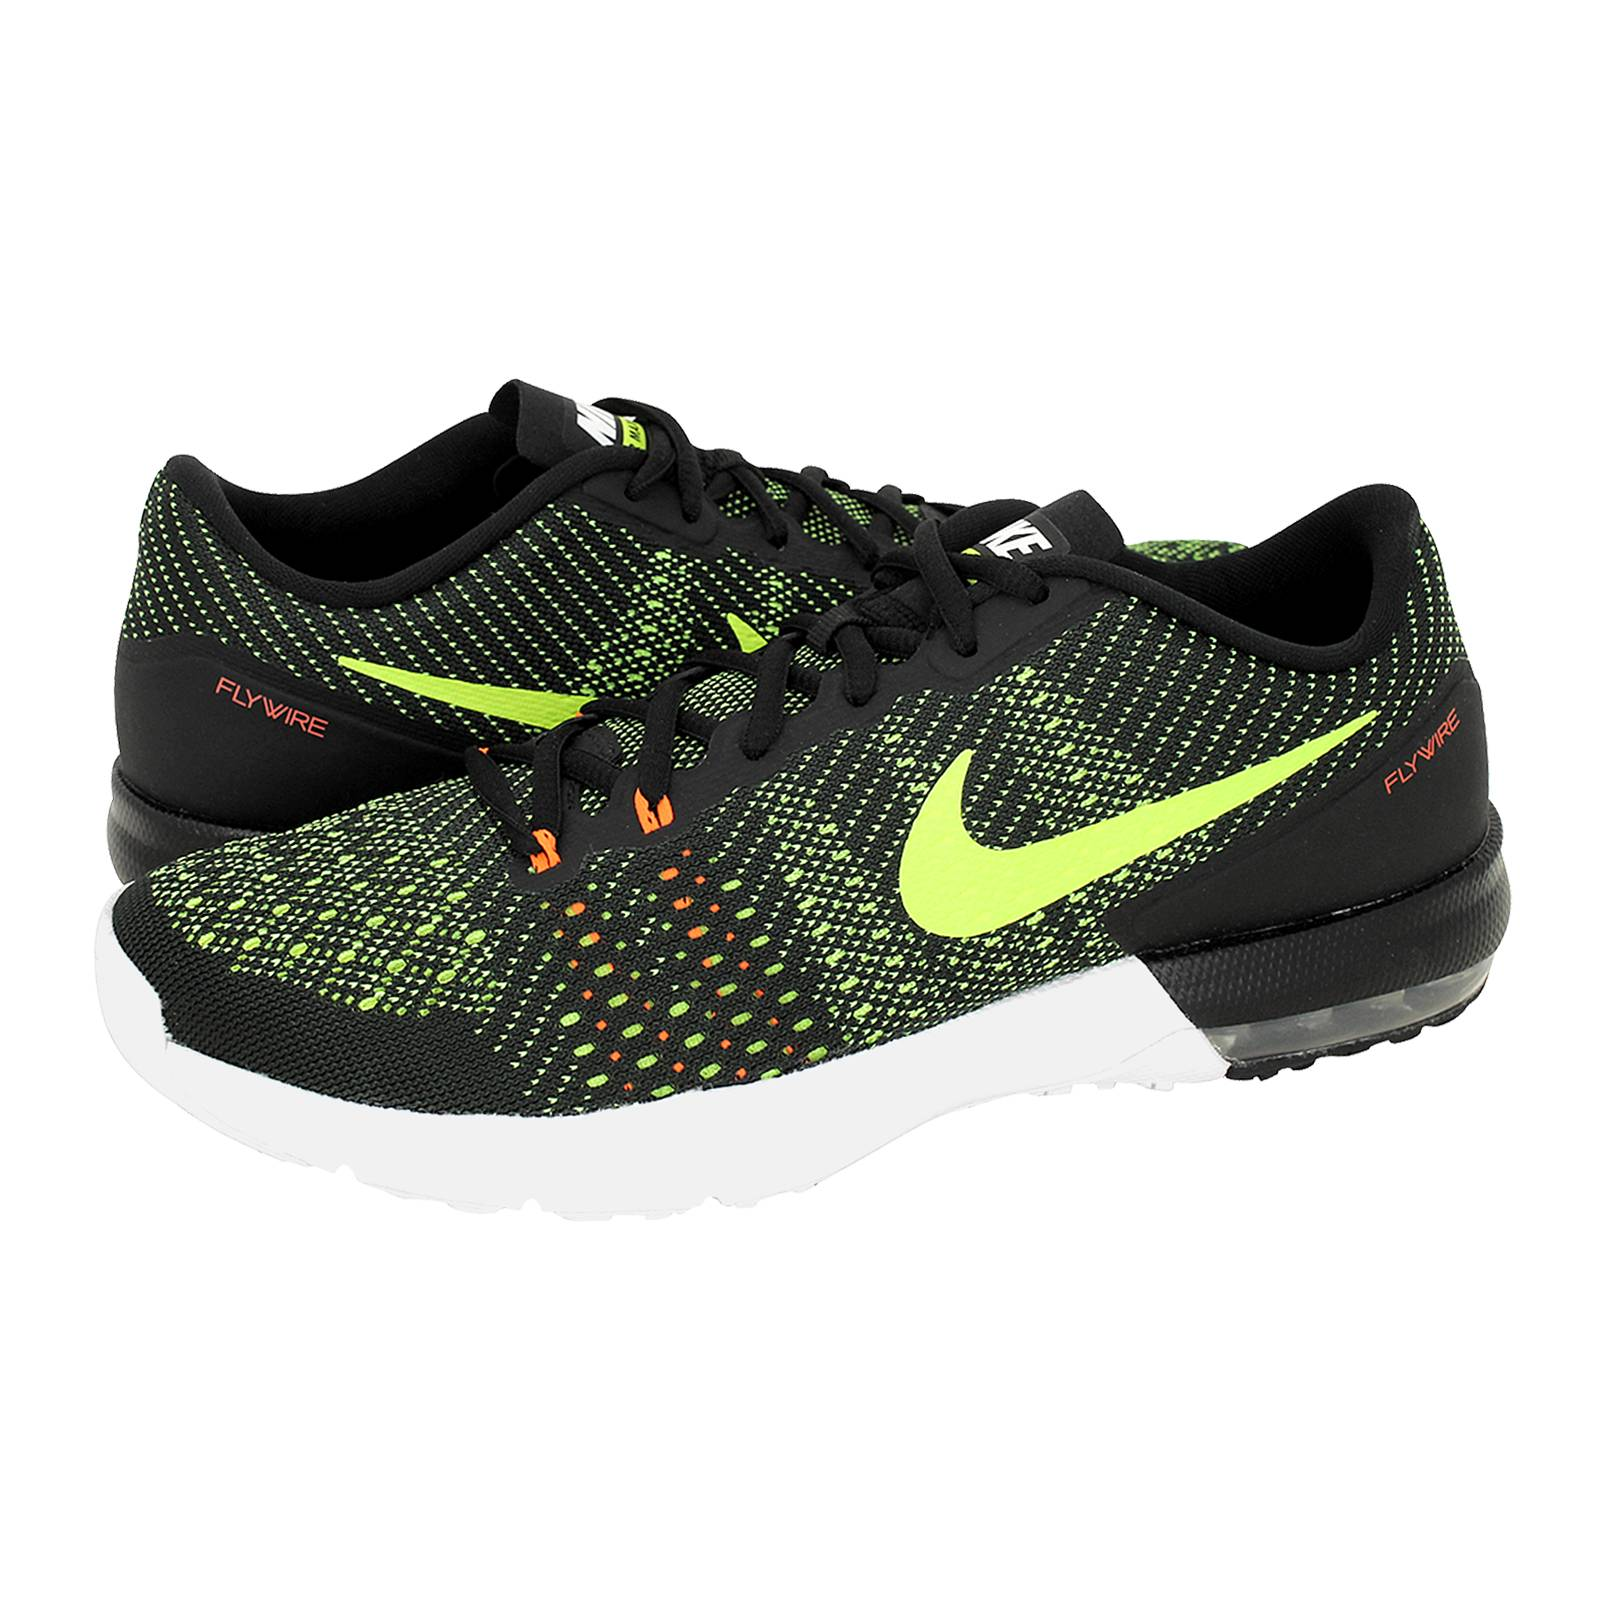 Air Max Typha - Nike Men s athletic shoes made of fabric and ... ac0e2e6e6